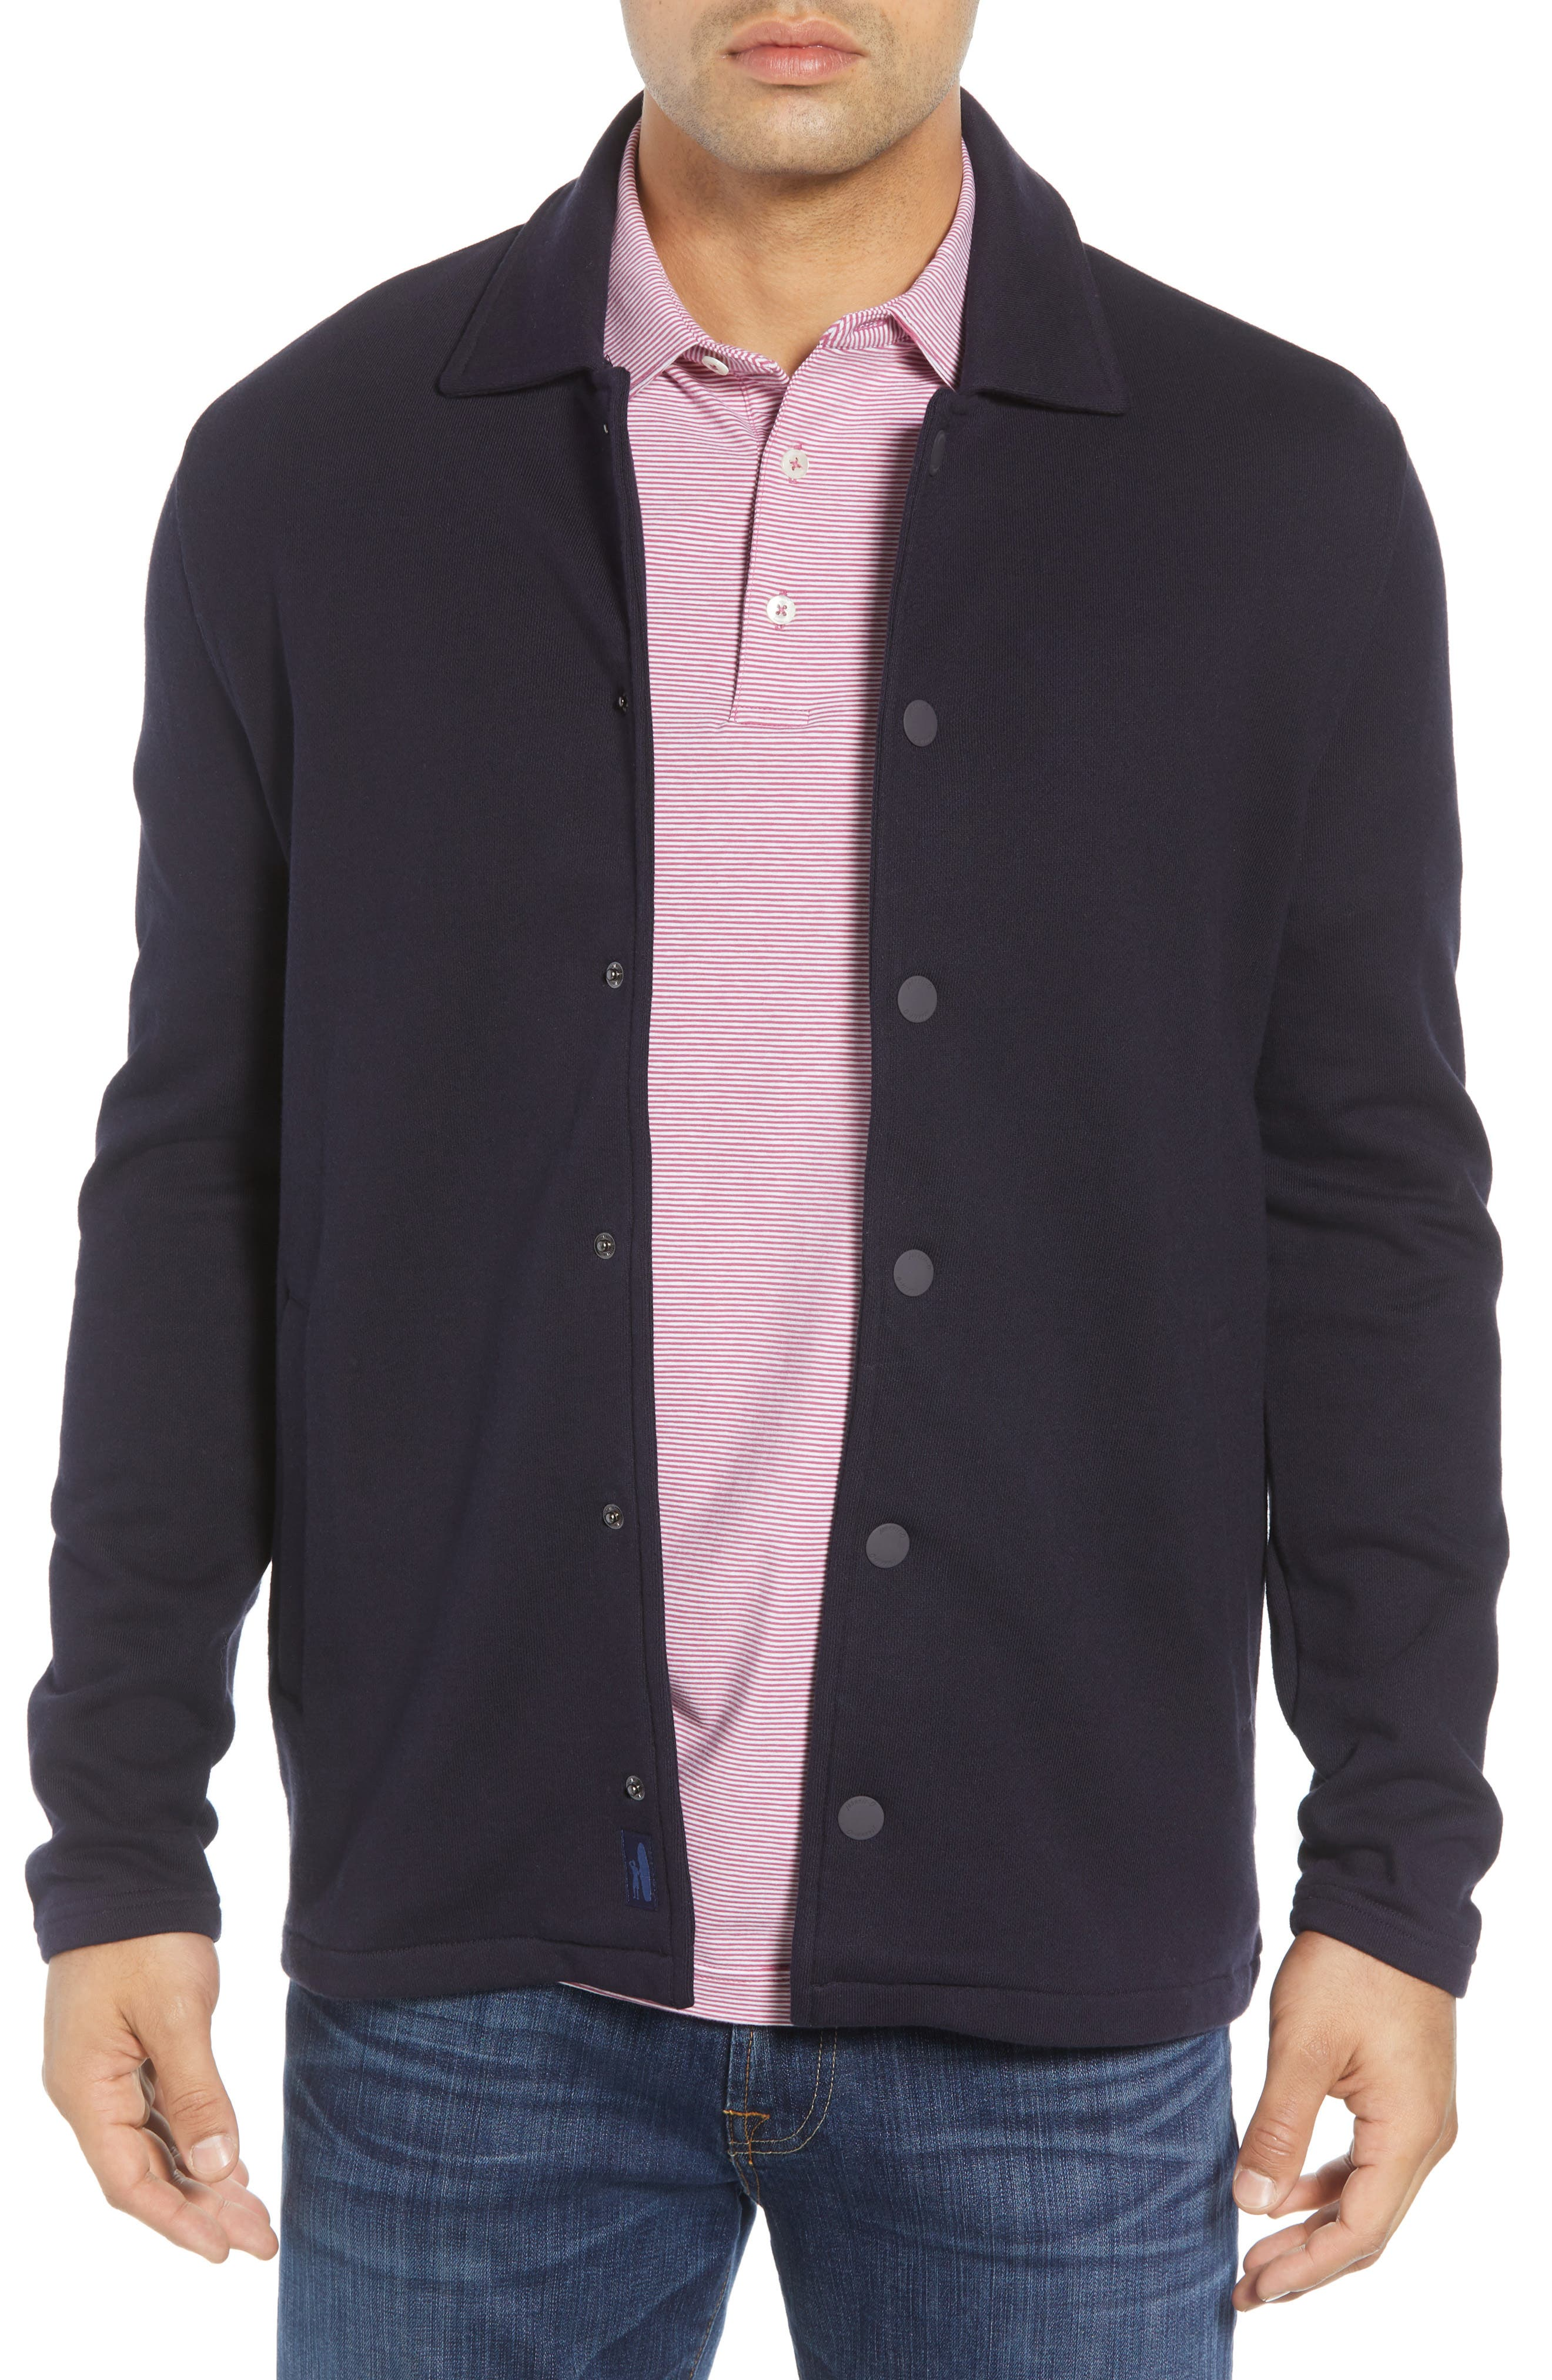 Norfolk Classic Fit Terry Jacket,                         Main,                         color, 464